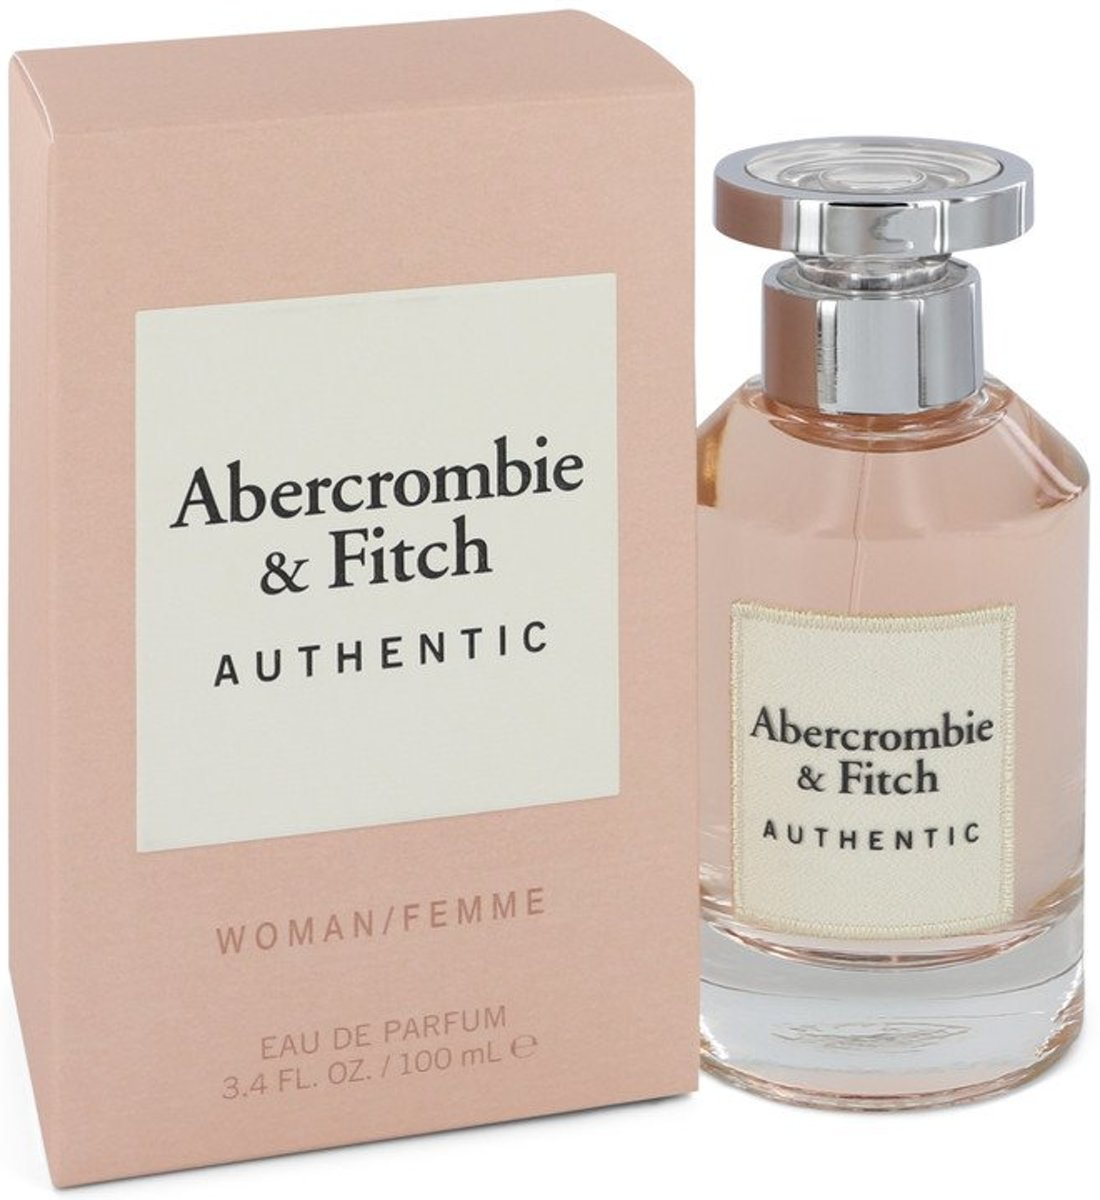 Abercrombie & Fitch Abercrombie & Fitch Authentic eau de parfum spray 100 ml